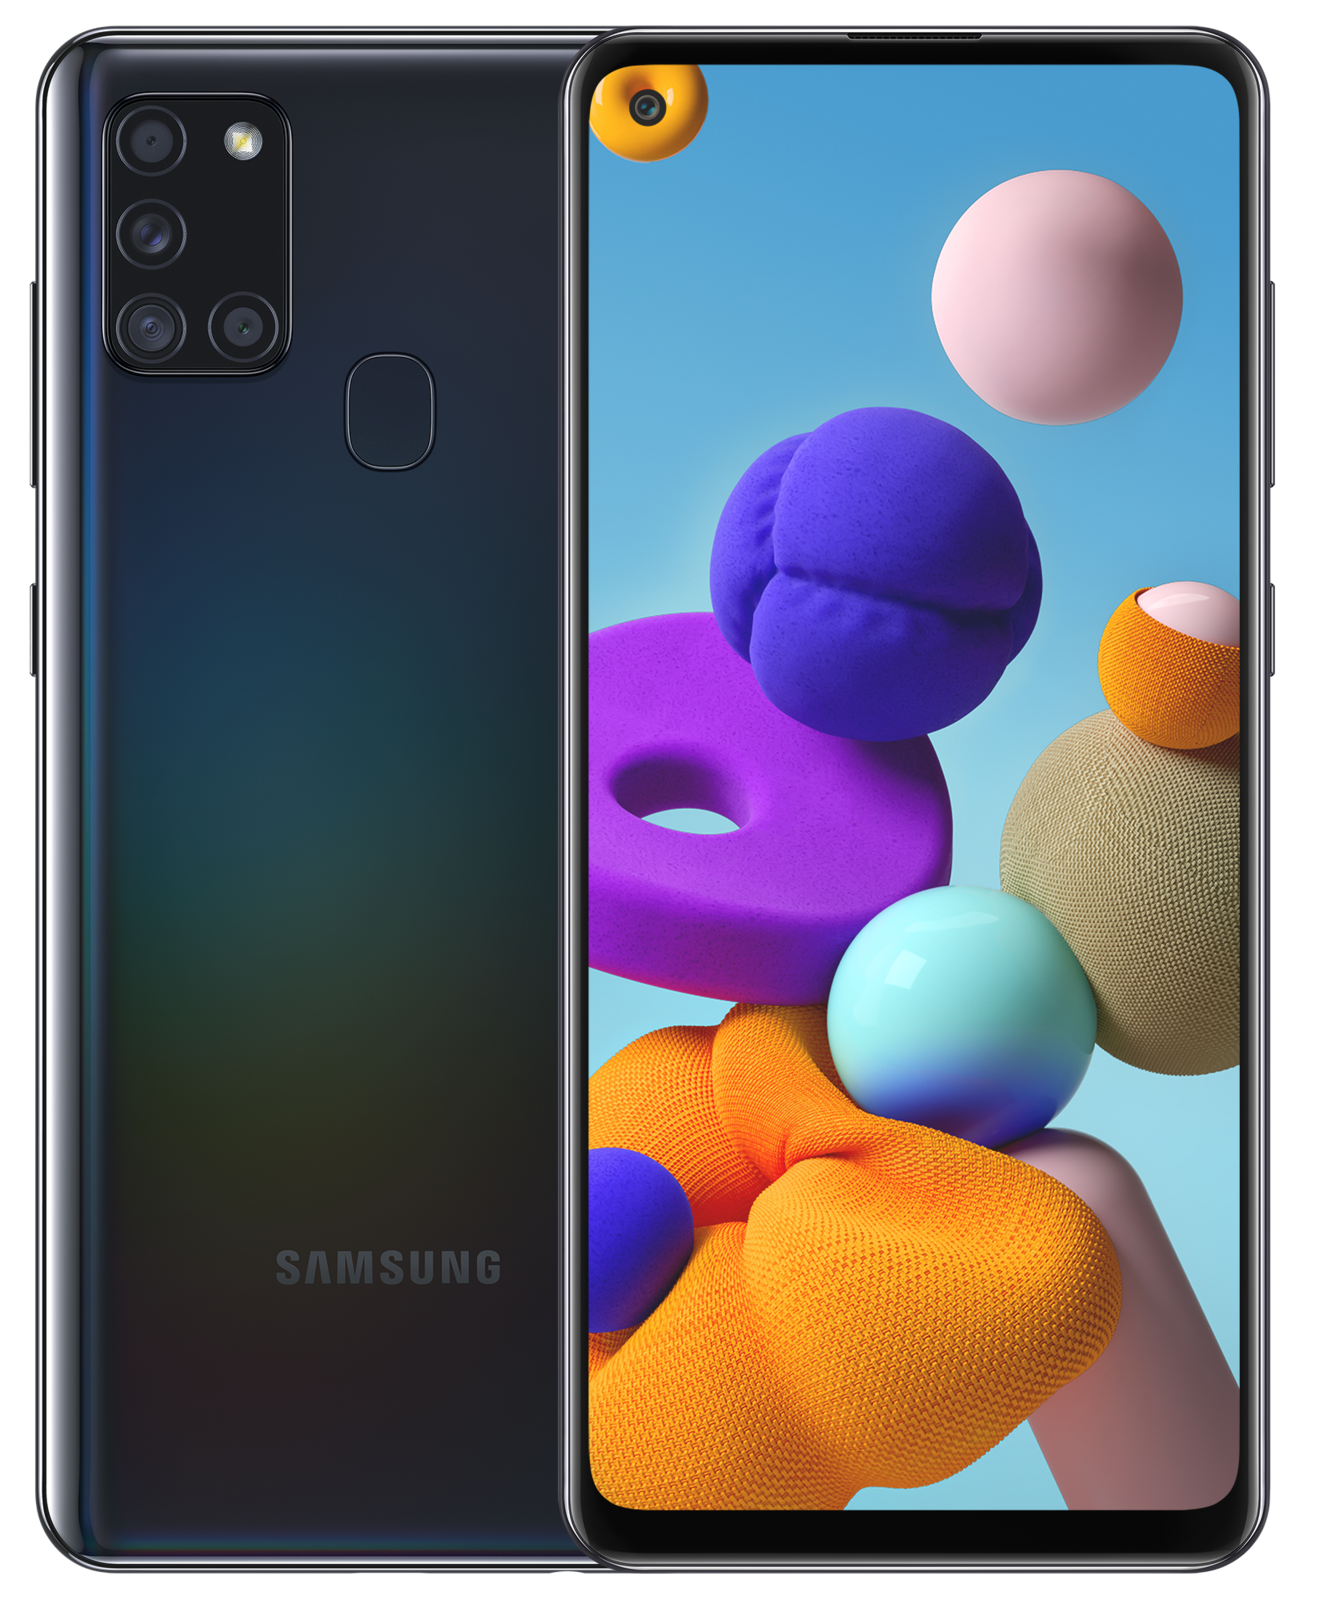 Android Phone - BRAND NEW Samsung Galaxy A21s 128GB Black Unlocked Android Smartphone - SM-A217F